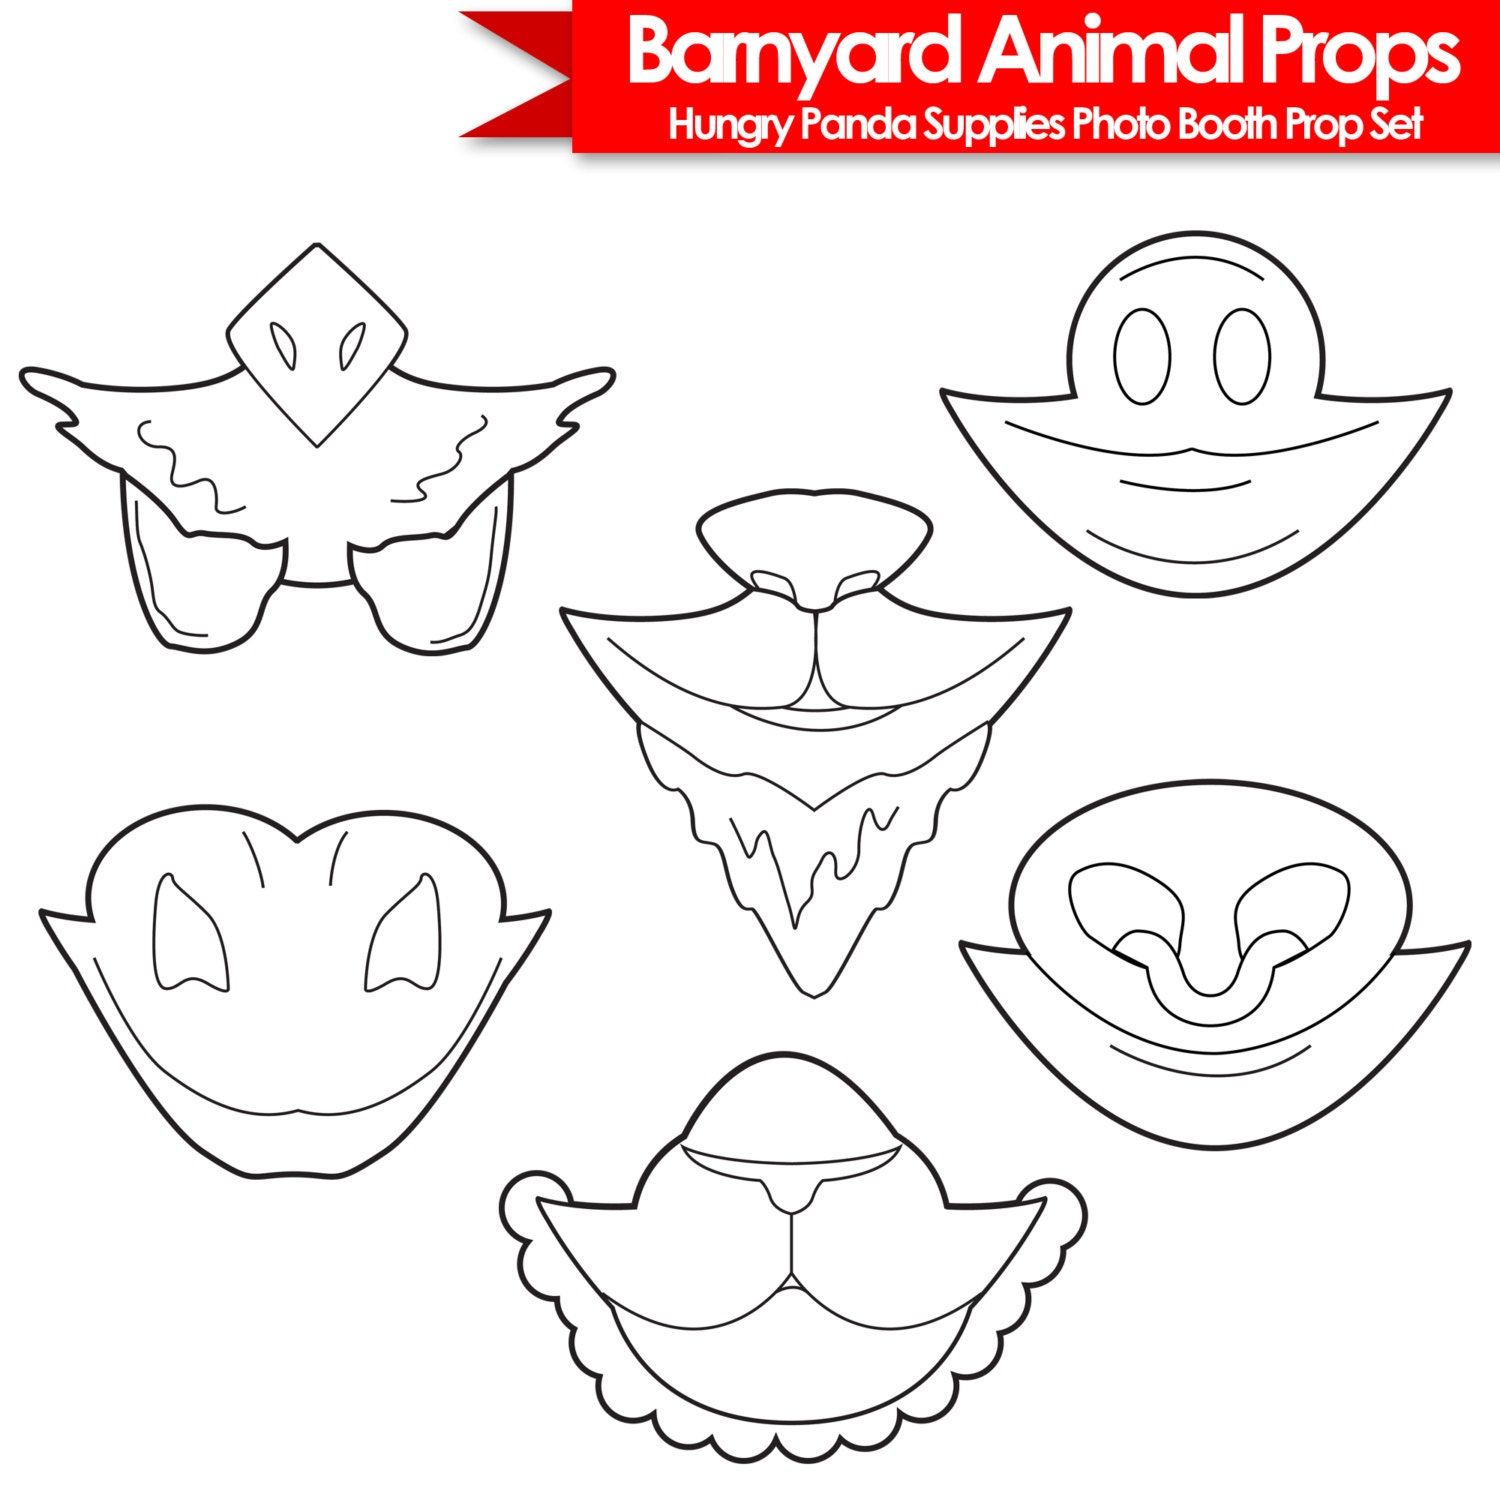 barnyard animals printable photo booth props black and white